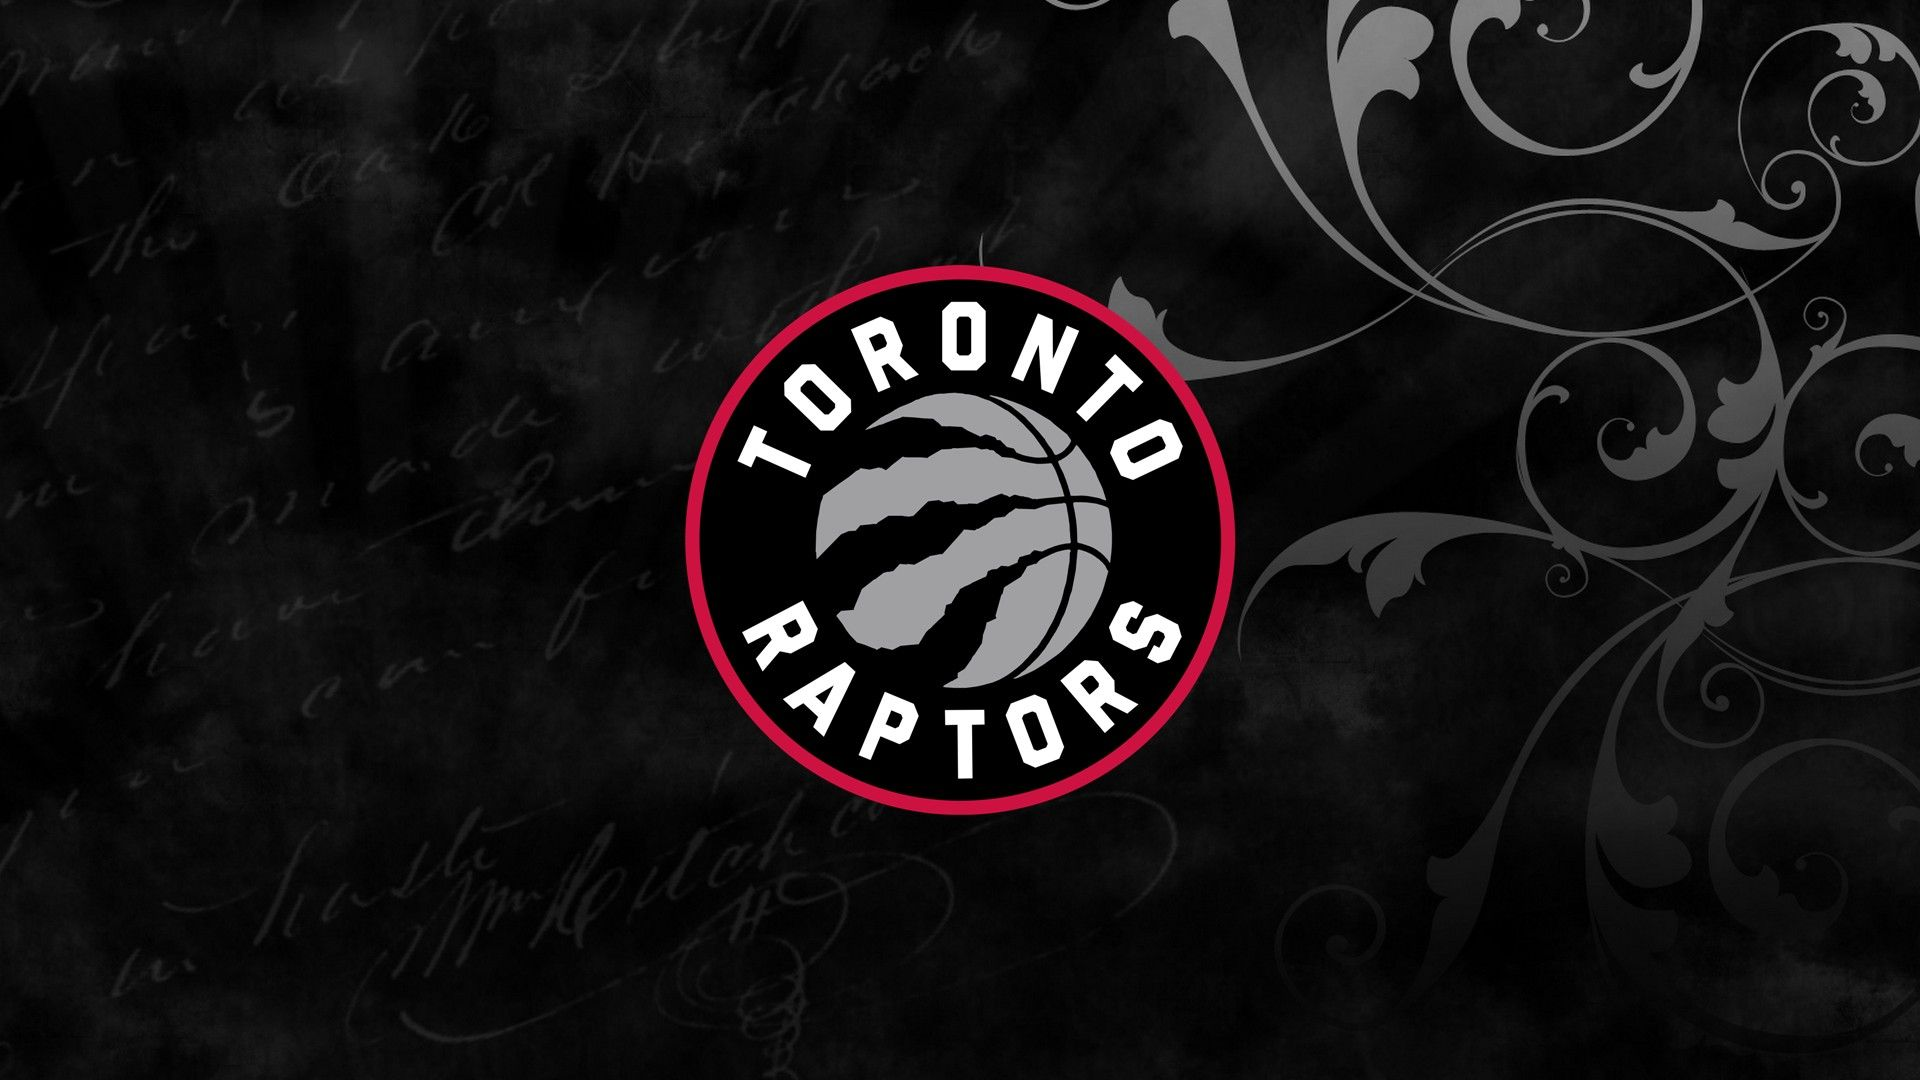 Nba Raptors Desktop Wallpapers 2020 Basketball Wallpaper Basketball Wallpapers Hd Basketball Wallpaper Basketball Anime